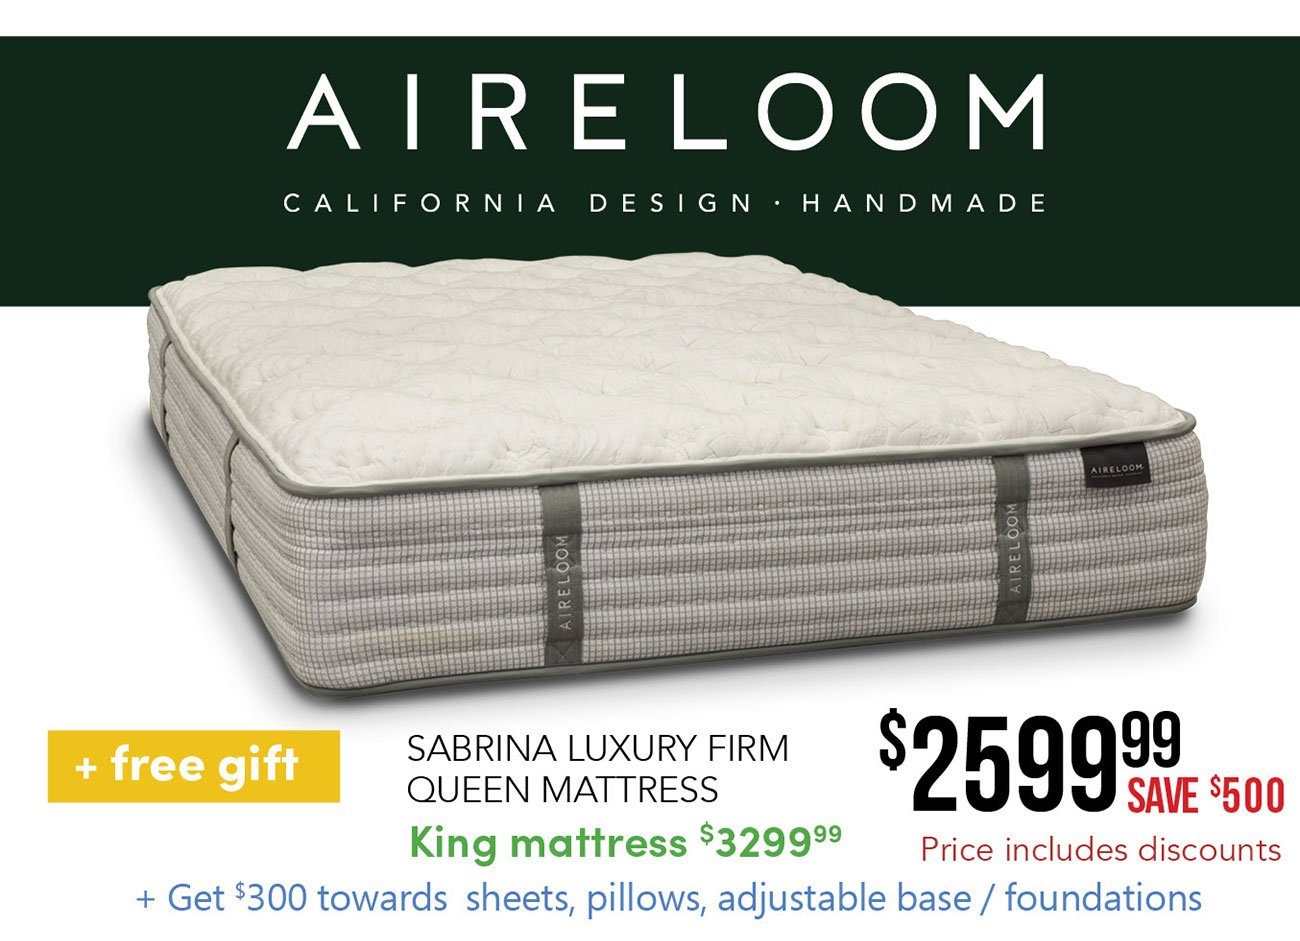 Airloom-queen-mattress